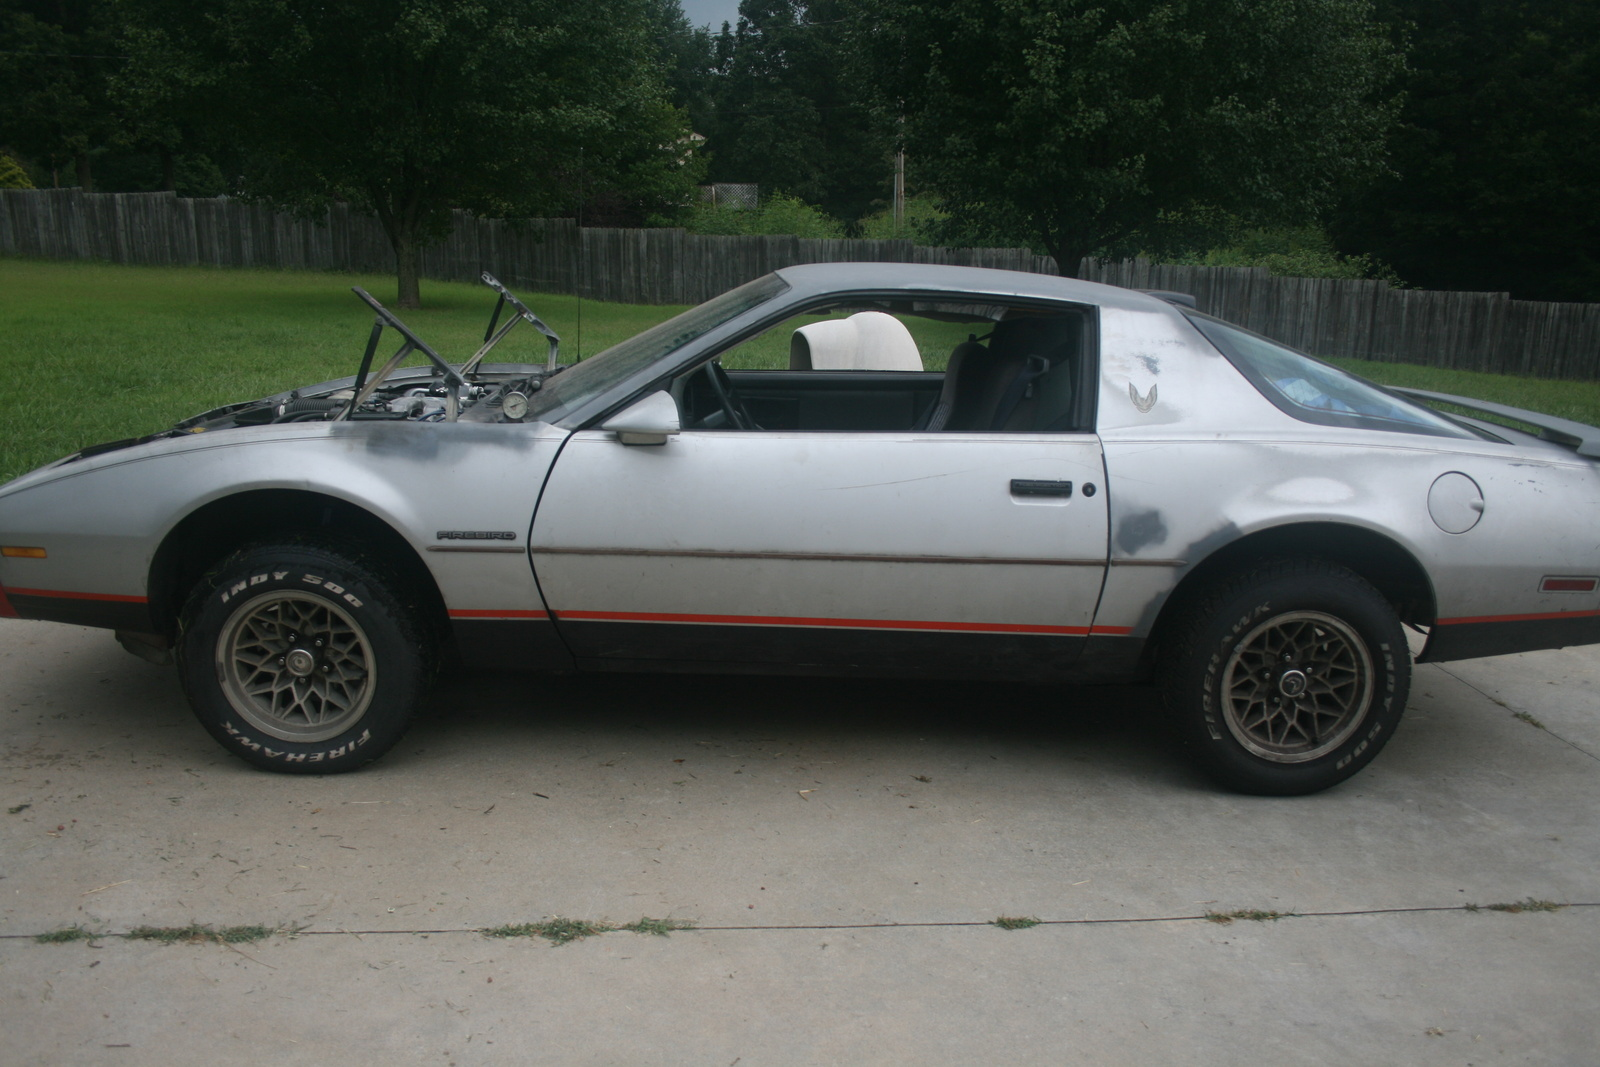 1986 pontiac firebird new supension with full weight for first time exterior gallery_worthy